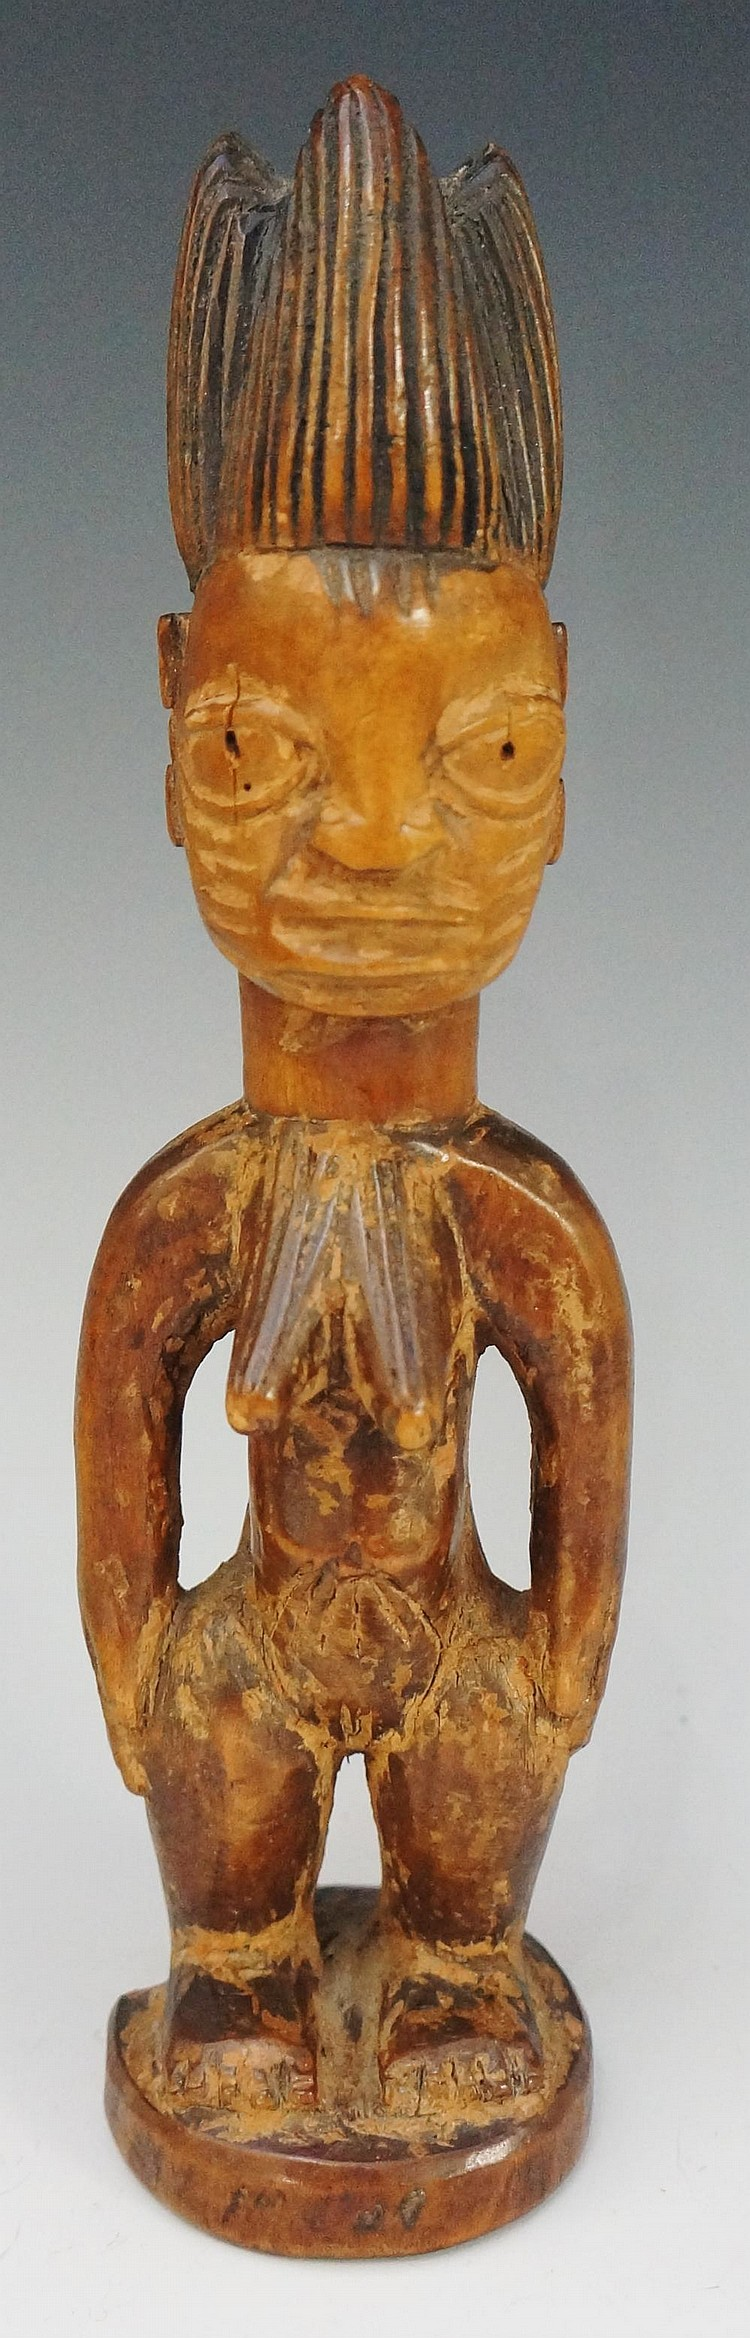 An African tribal figure of a female, with hands on her hips, ornate hair,